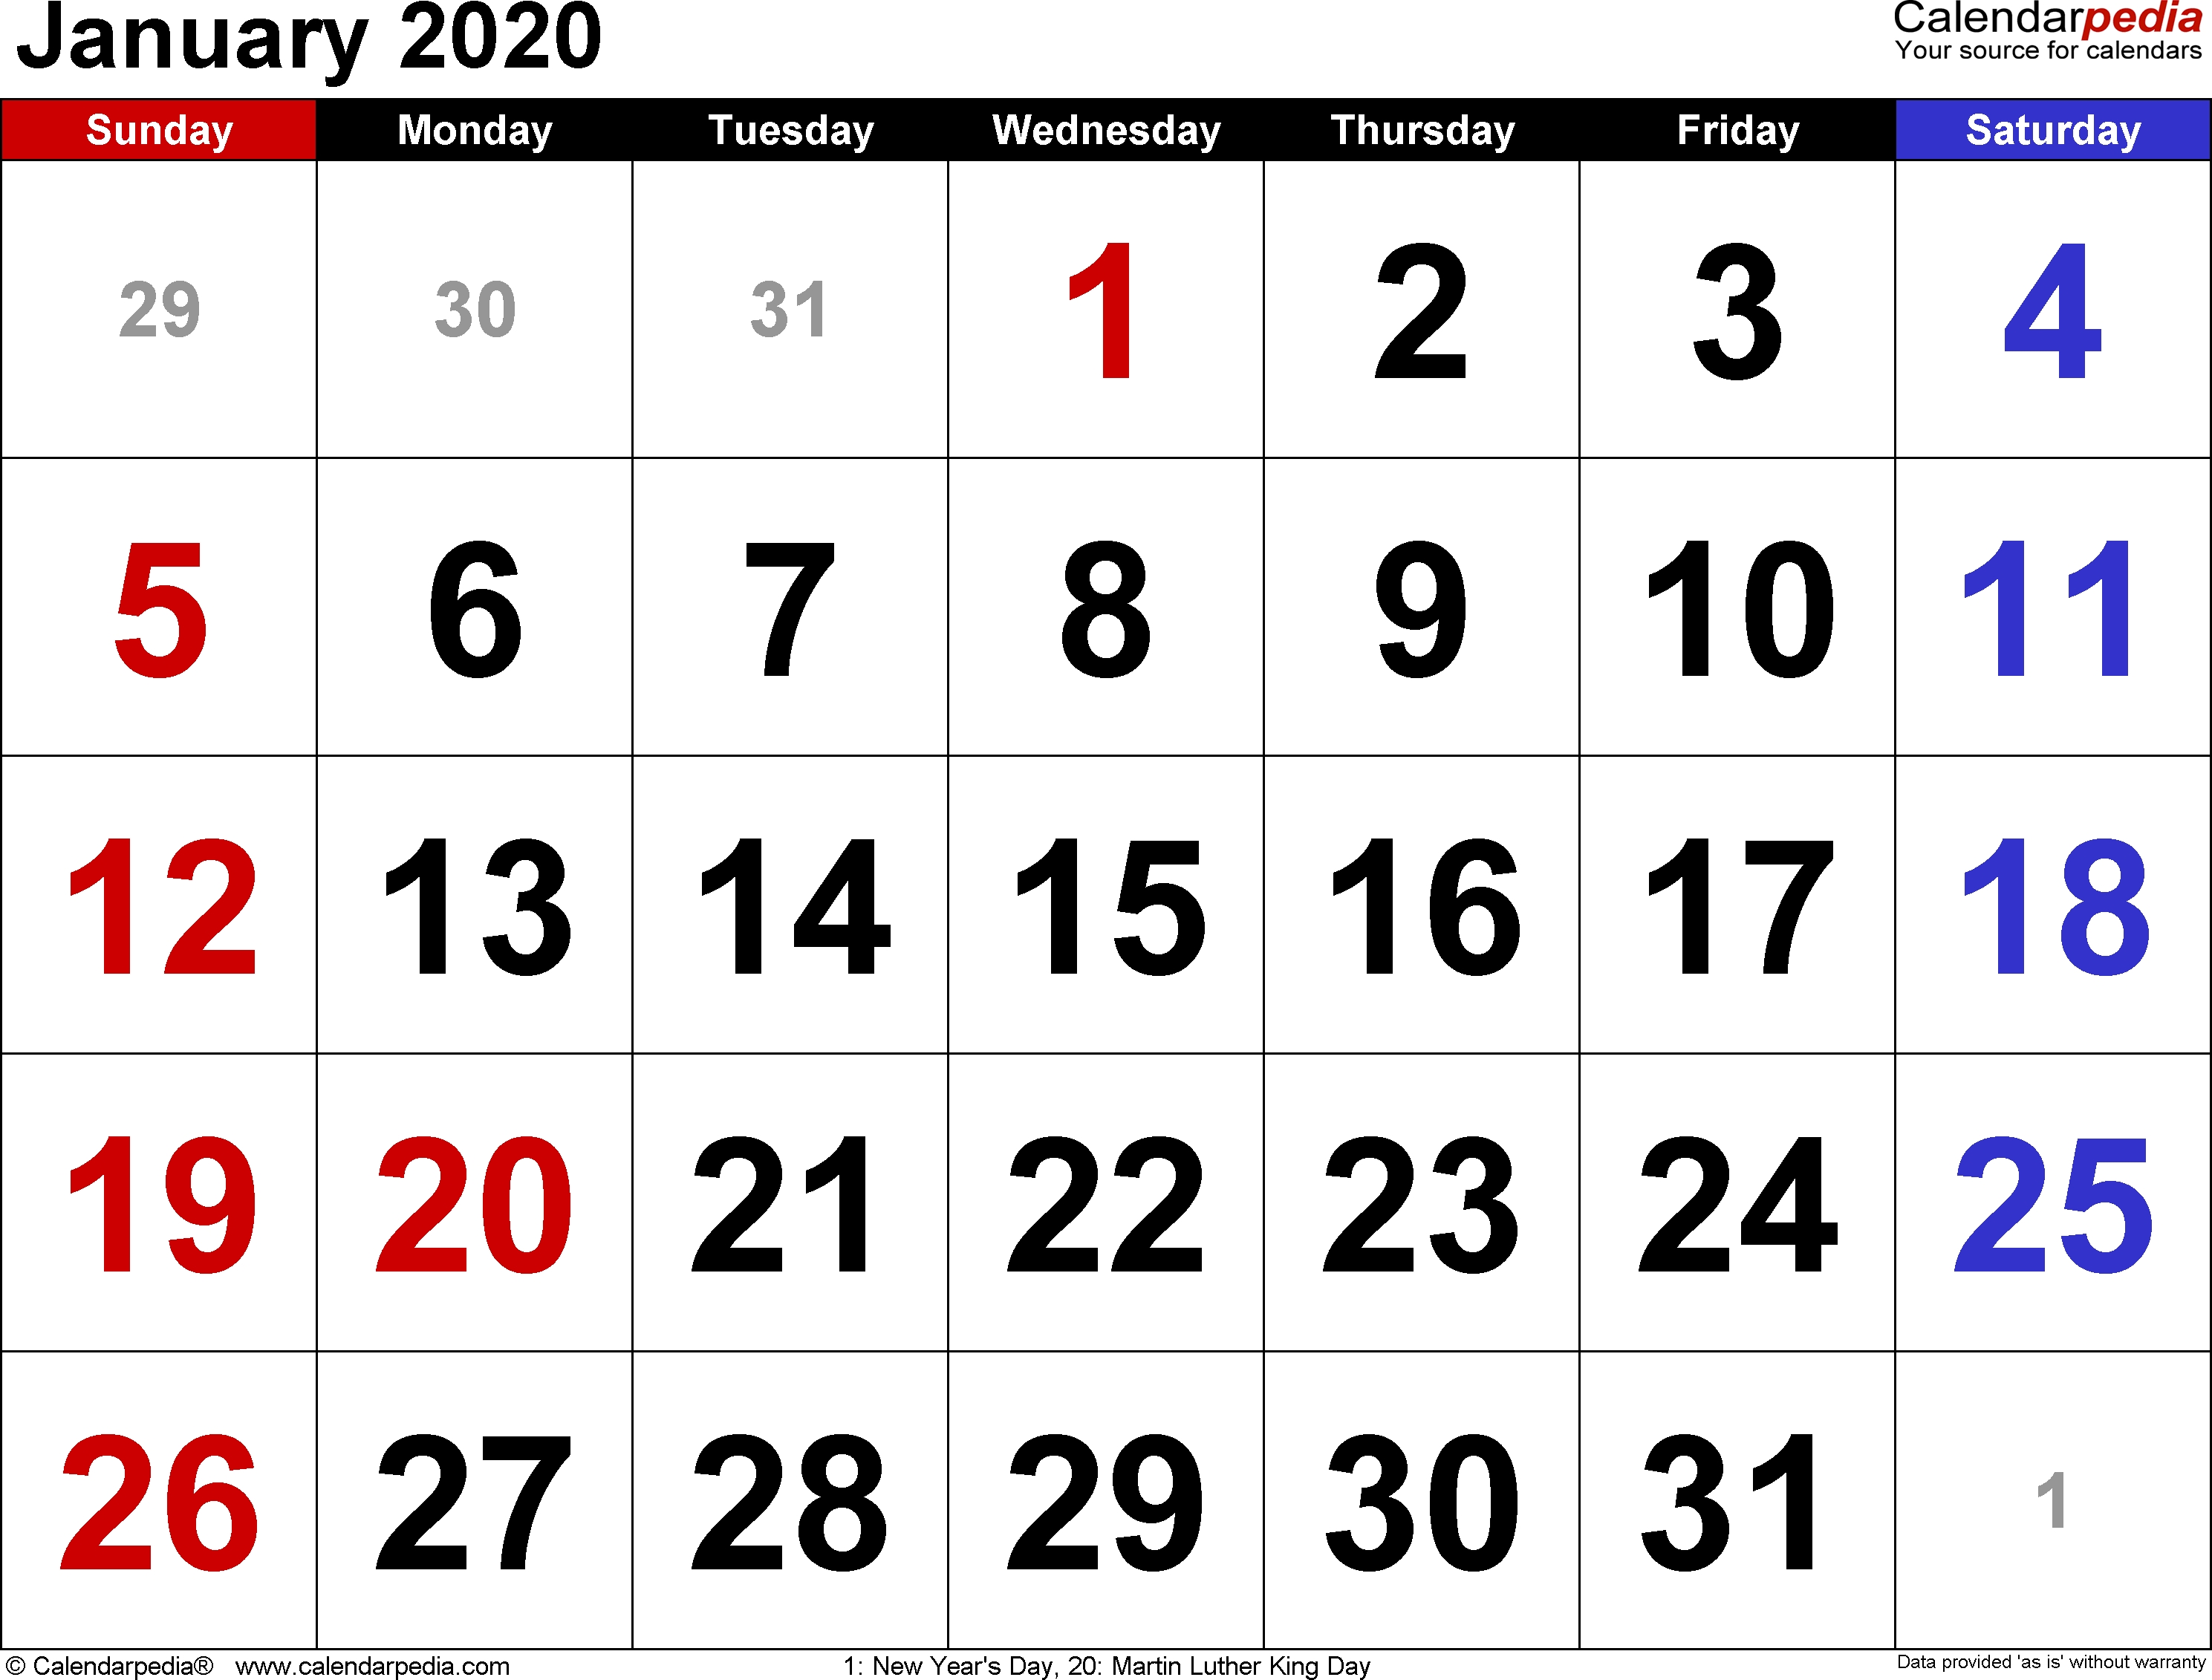 January 2020 Calendars For Word, Excel & Pdf-January 2020 Calendar With Us Holidays